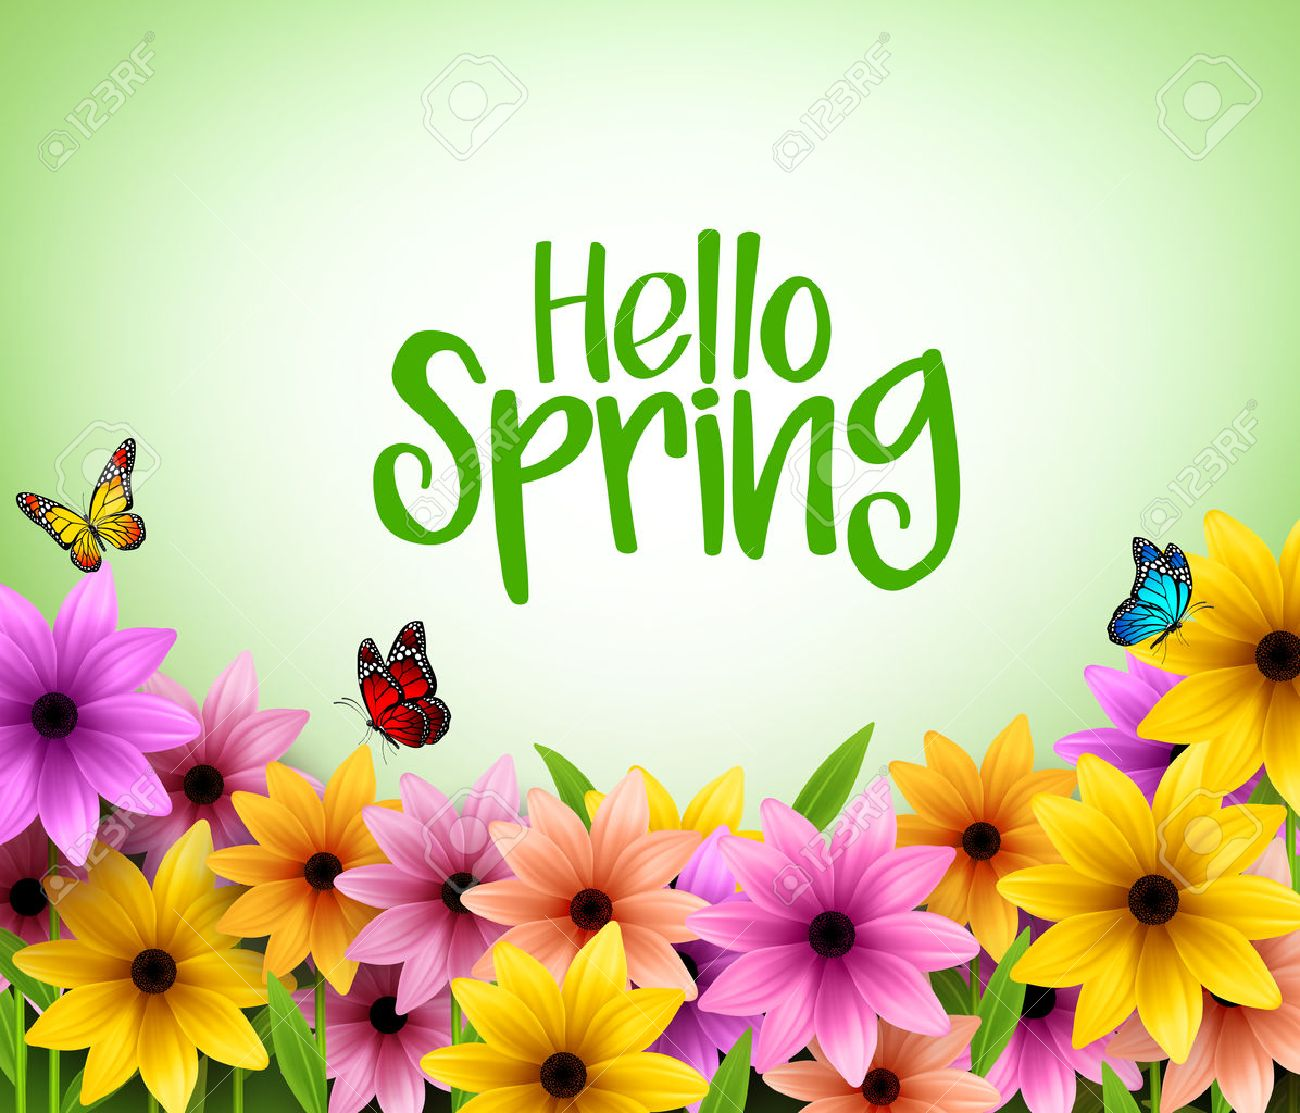 Colorful Flowers Background in 3D Realistic Vector for Spring Season with Space for Message. Vector Illustration - 51701025